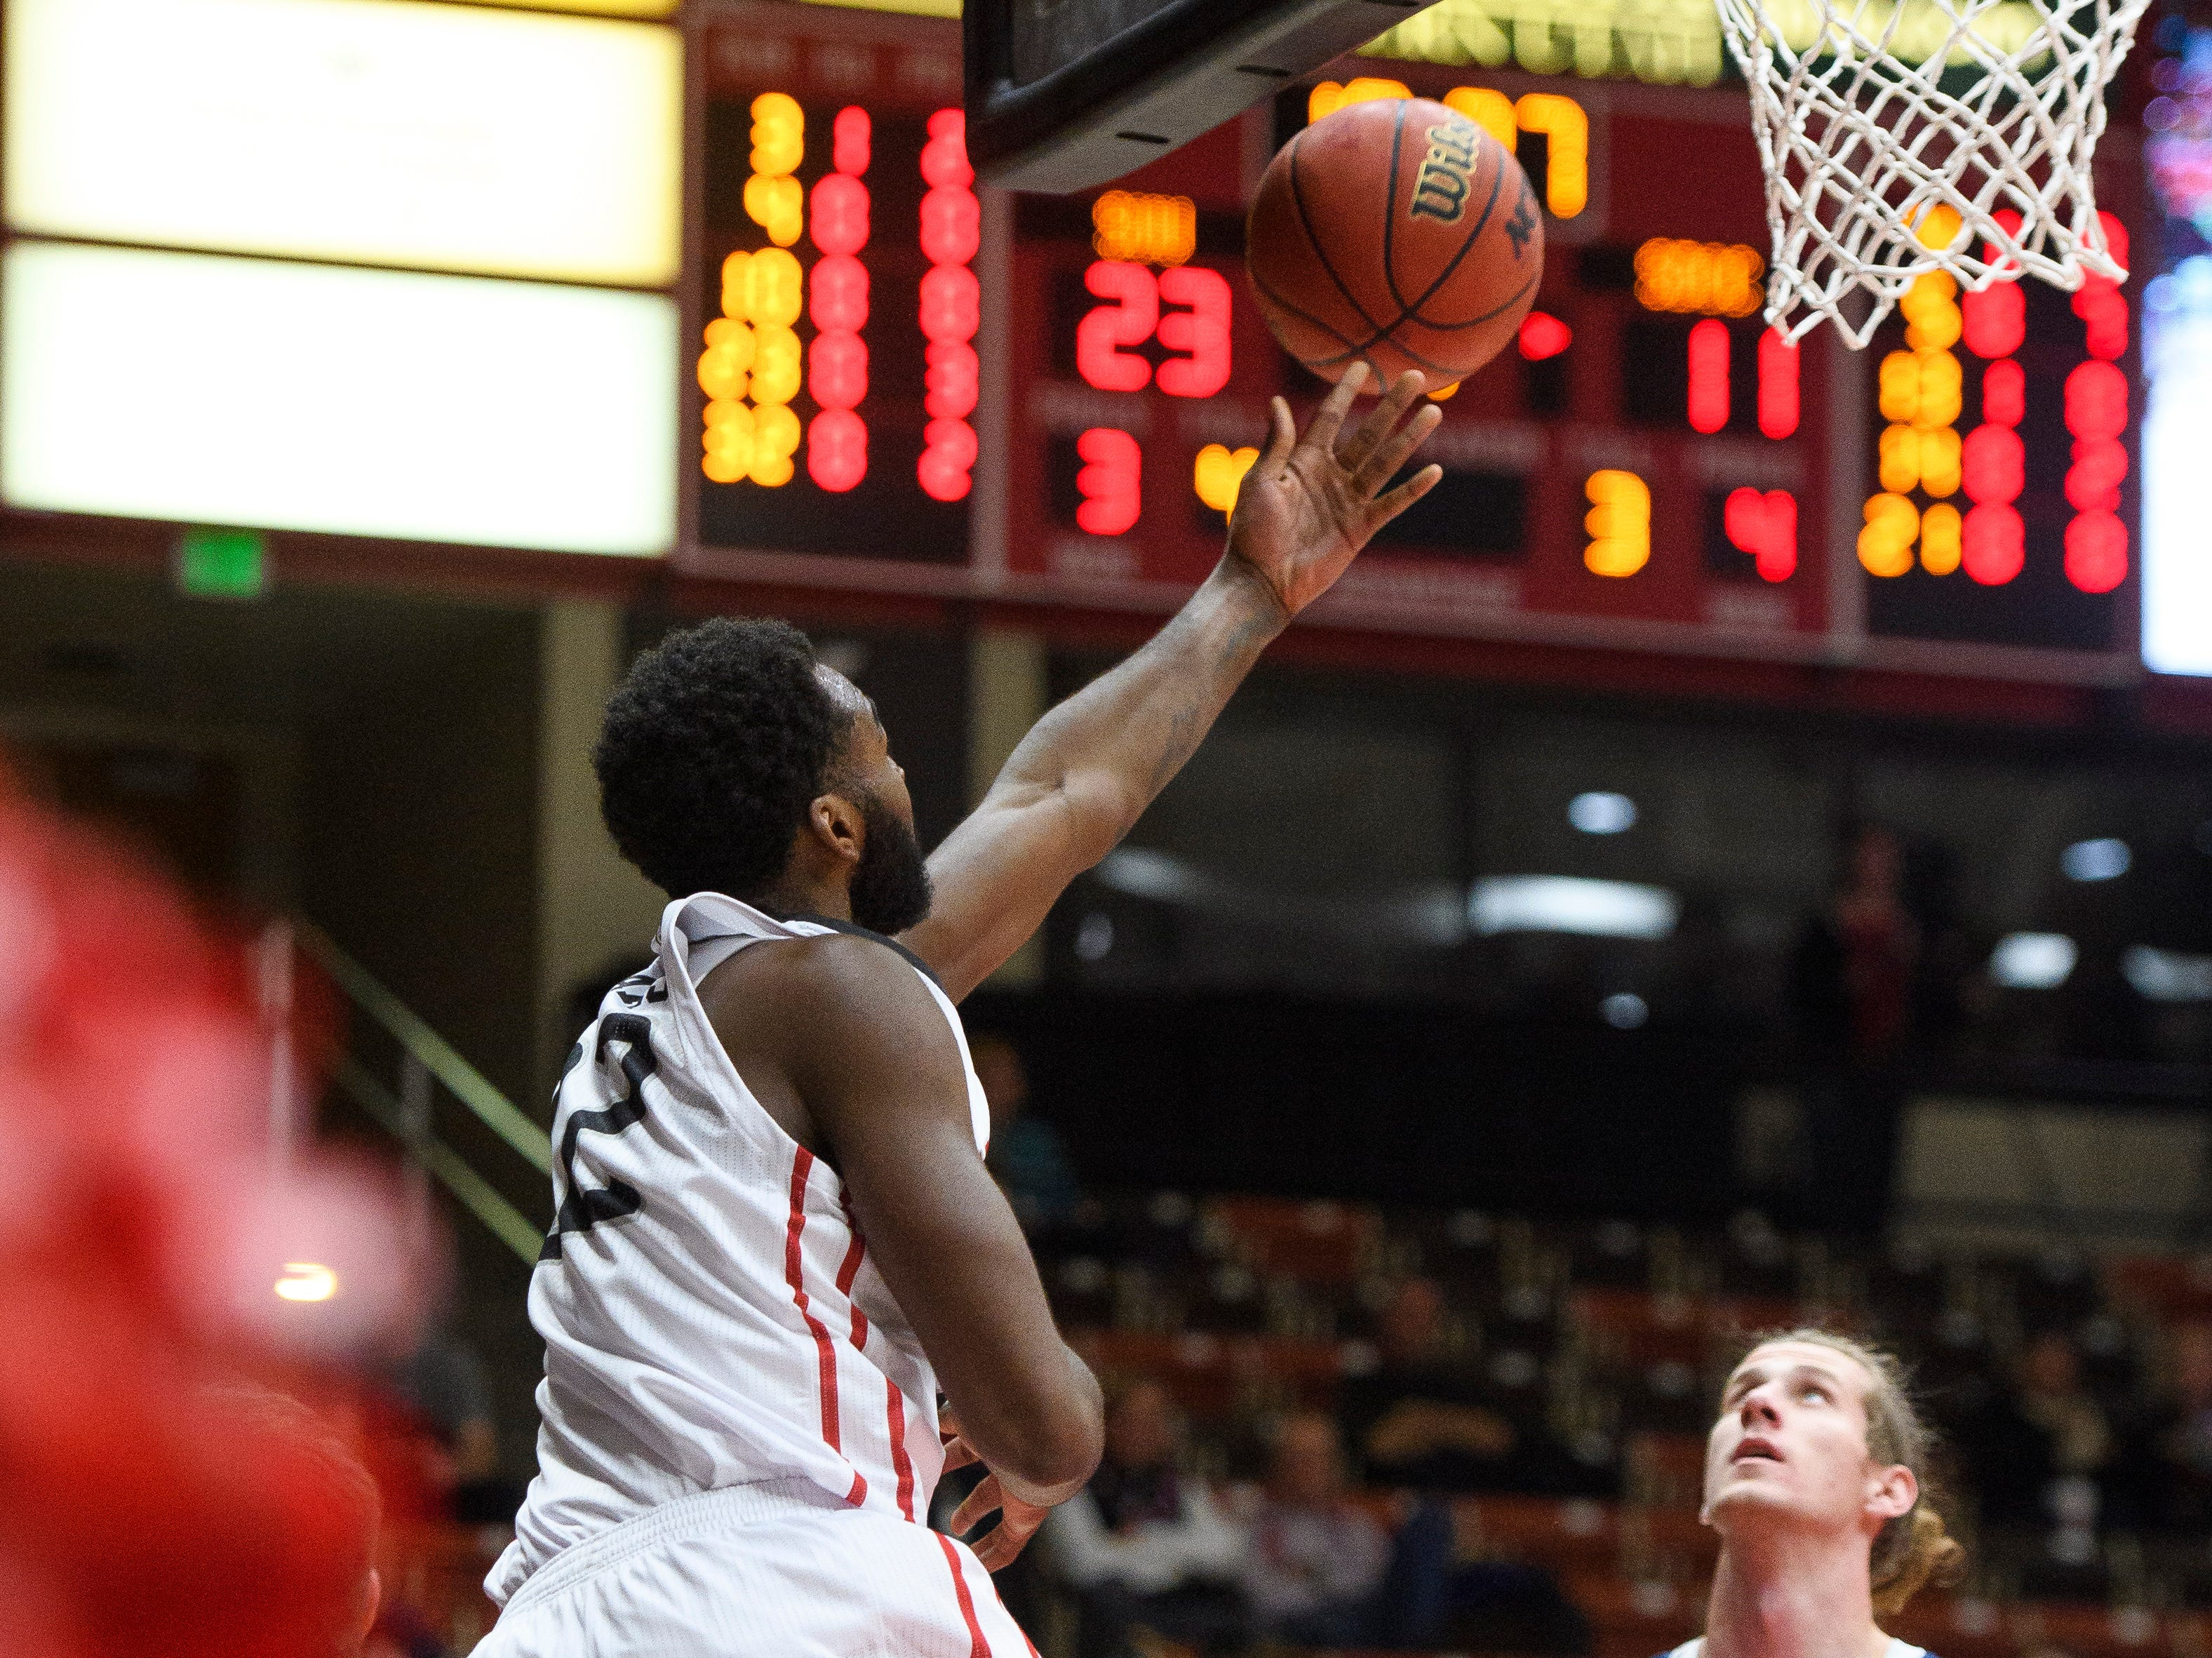 The Southern Utah University men's basketball team battles San Diego Christian at the America First Event Center Thursday, November 29, 2018.